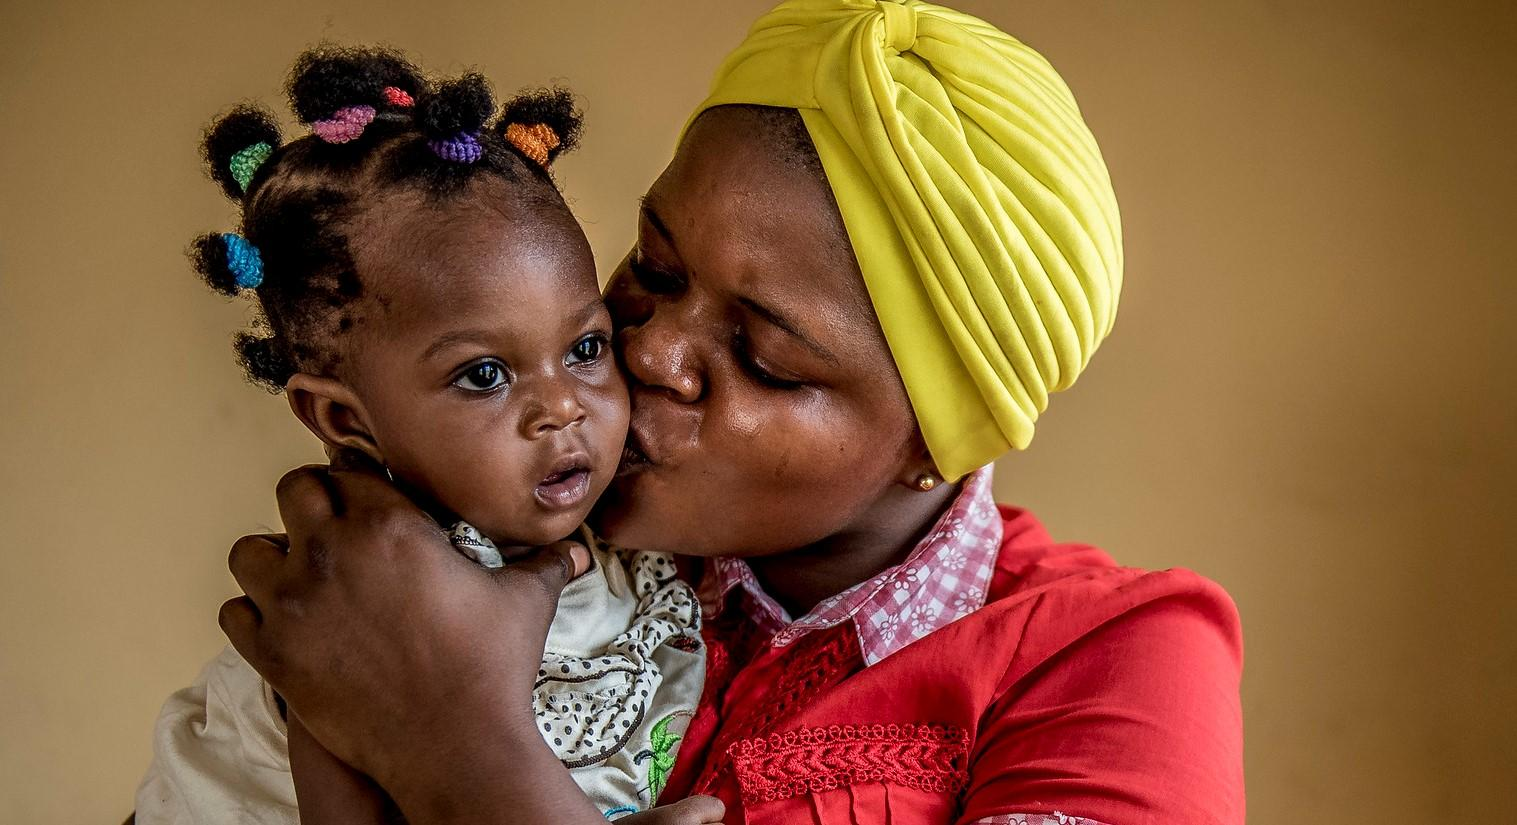 Nigeria woman and baby